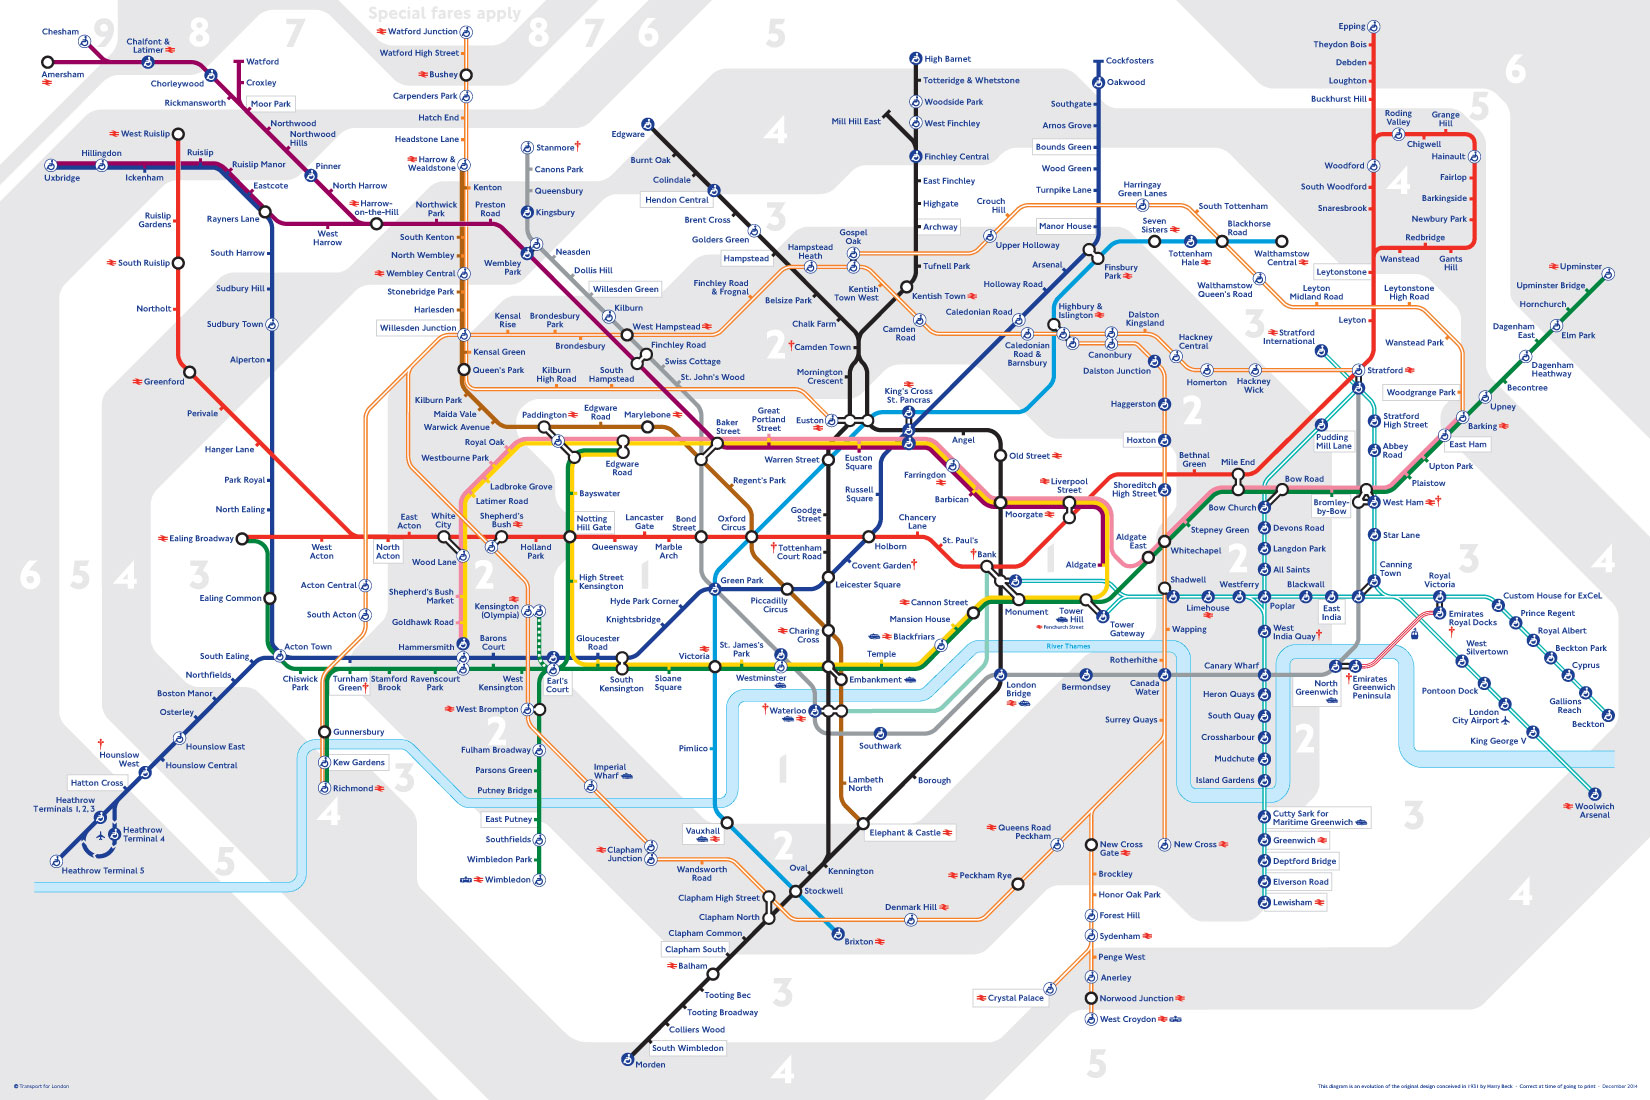 Image of a map of the London Underground tube